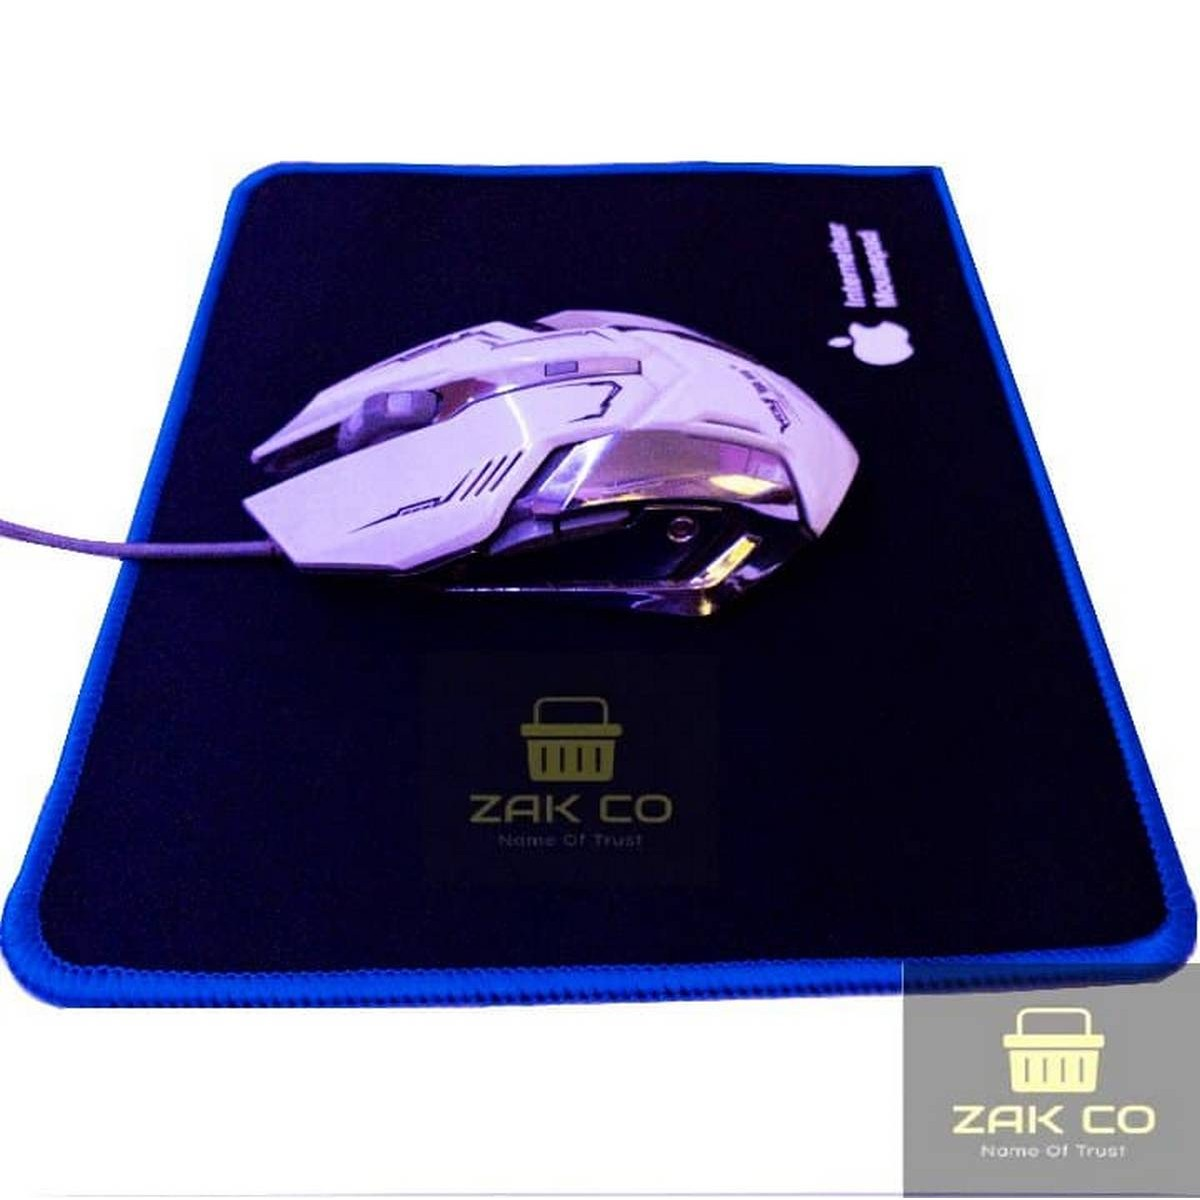 100%ORIGINAL Stitched Edges Gaming Mouse Pad Non Slip Rubber Thick  - Soft Cloth Mousepad for Basic and Gaming - Medium Size 9.5 x 8.5 Inches 2.5mm Thickness - Office Use High Quality Premium - Blue Lock Edges Anti Slip Black Mouse Sheet - Gaming - PUBG